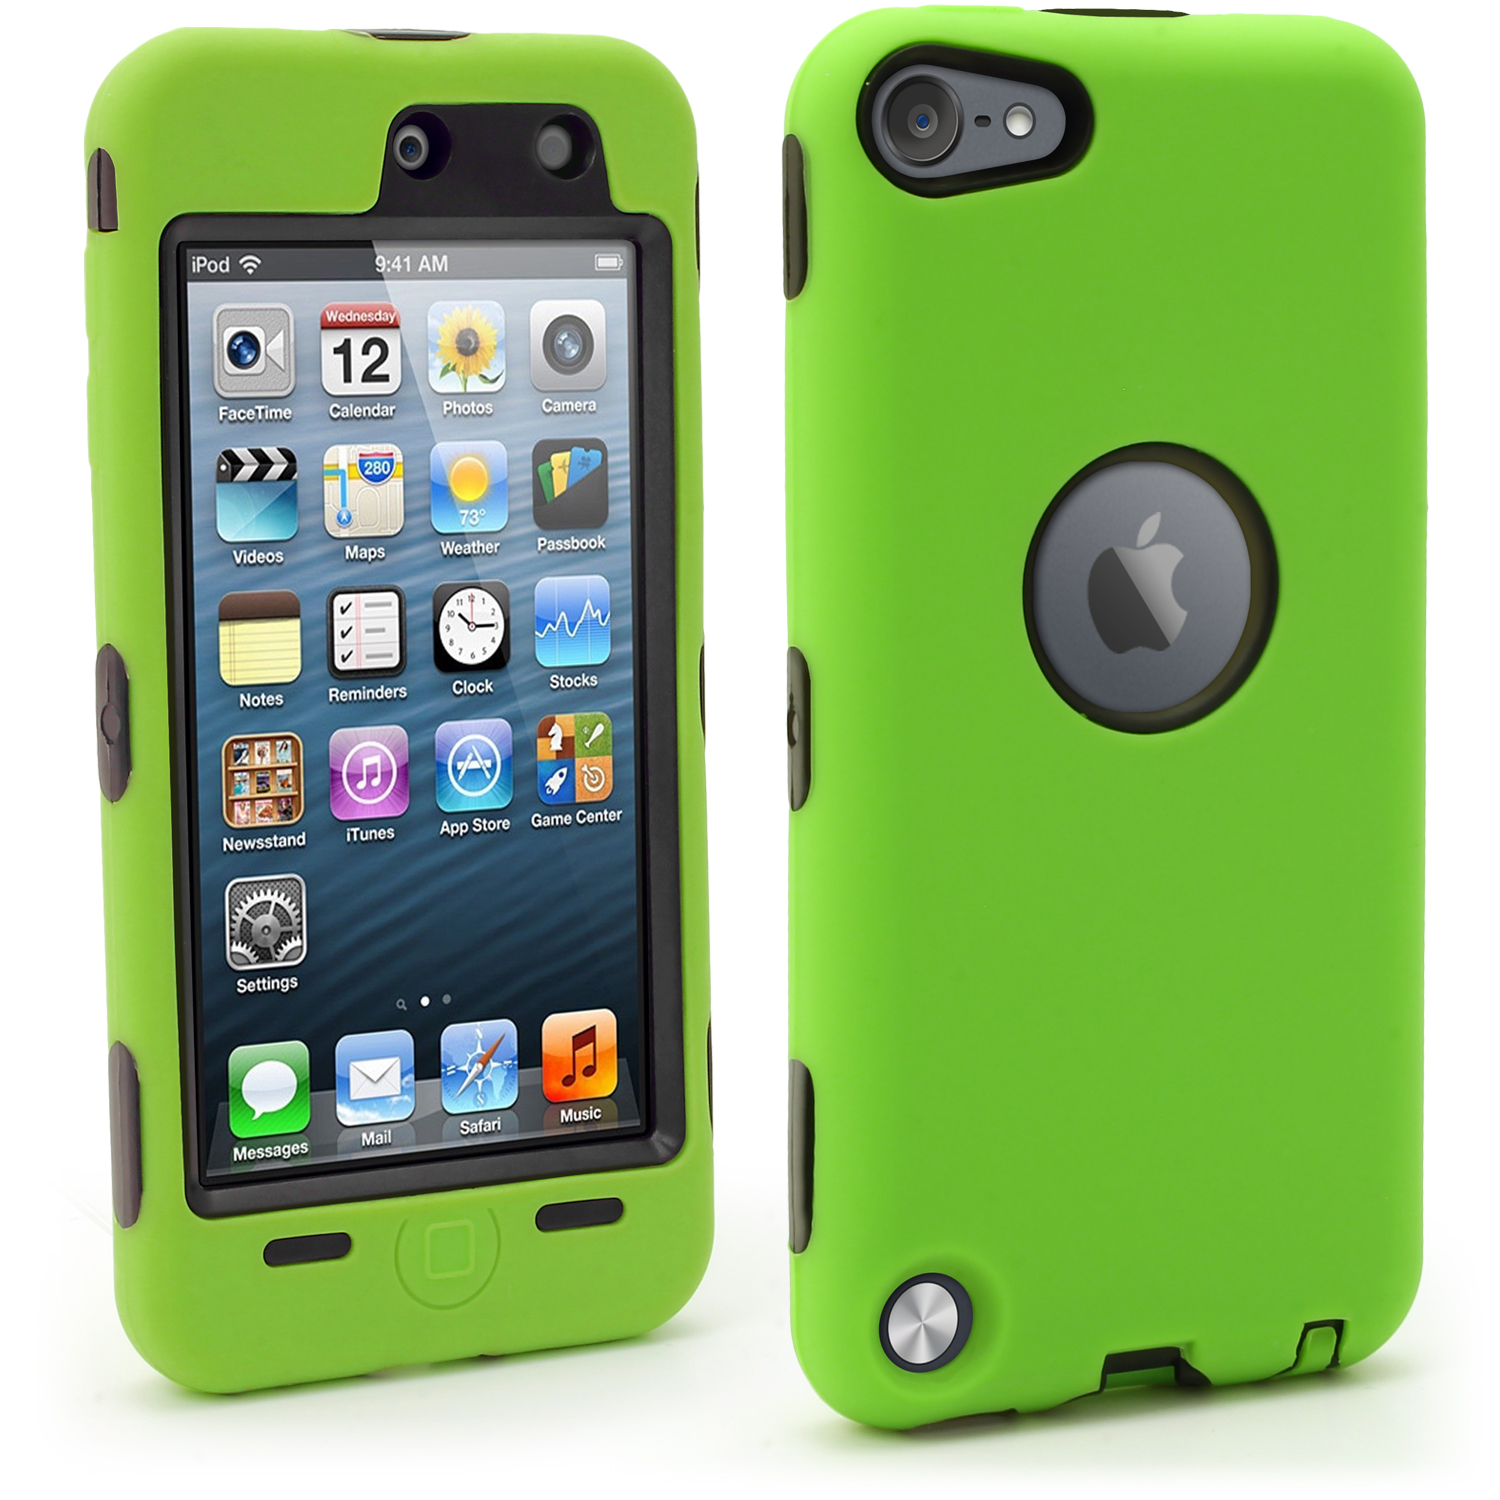 iGadgitz Armour Hard Shell & Silicone Bumper Case with Built-In Screen for Apple iPod Touch 5th & 6th Gen? Green & Black